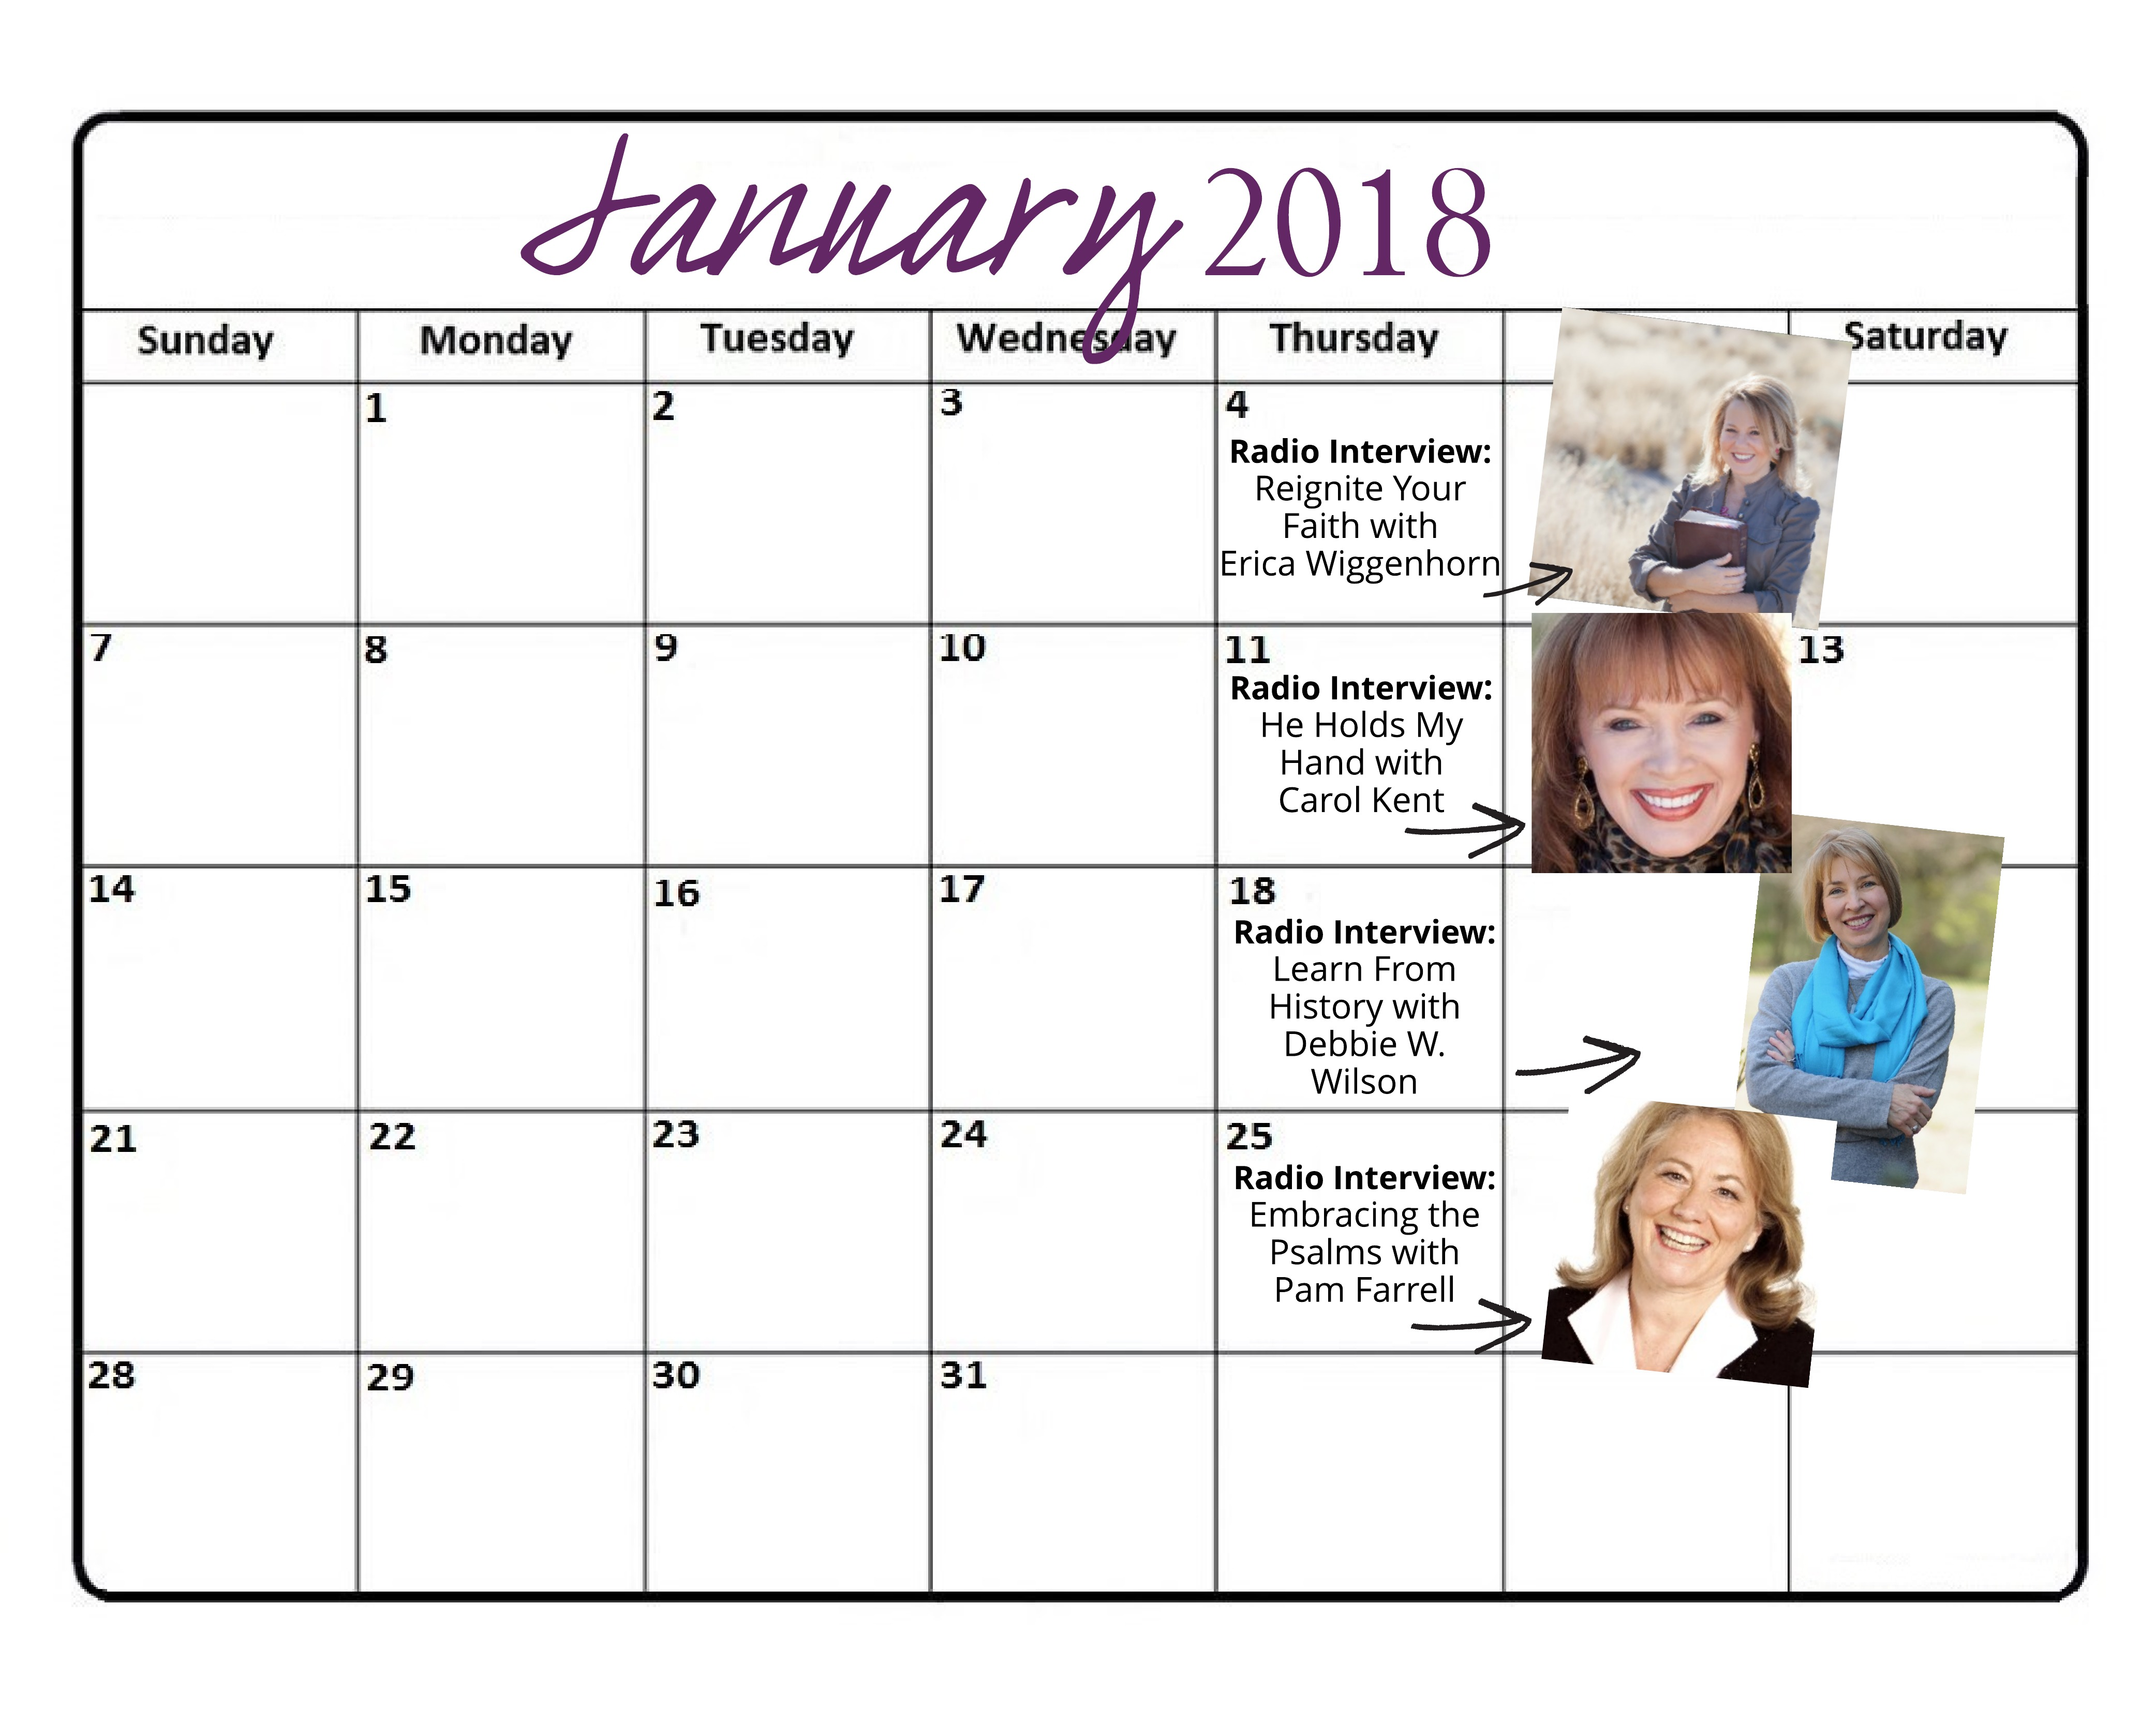 New-January 2018 Radio Schedule for Website